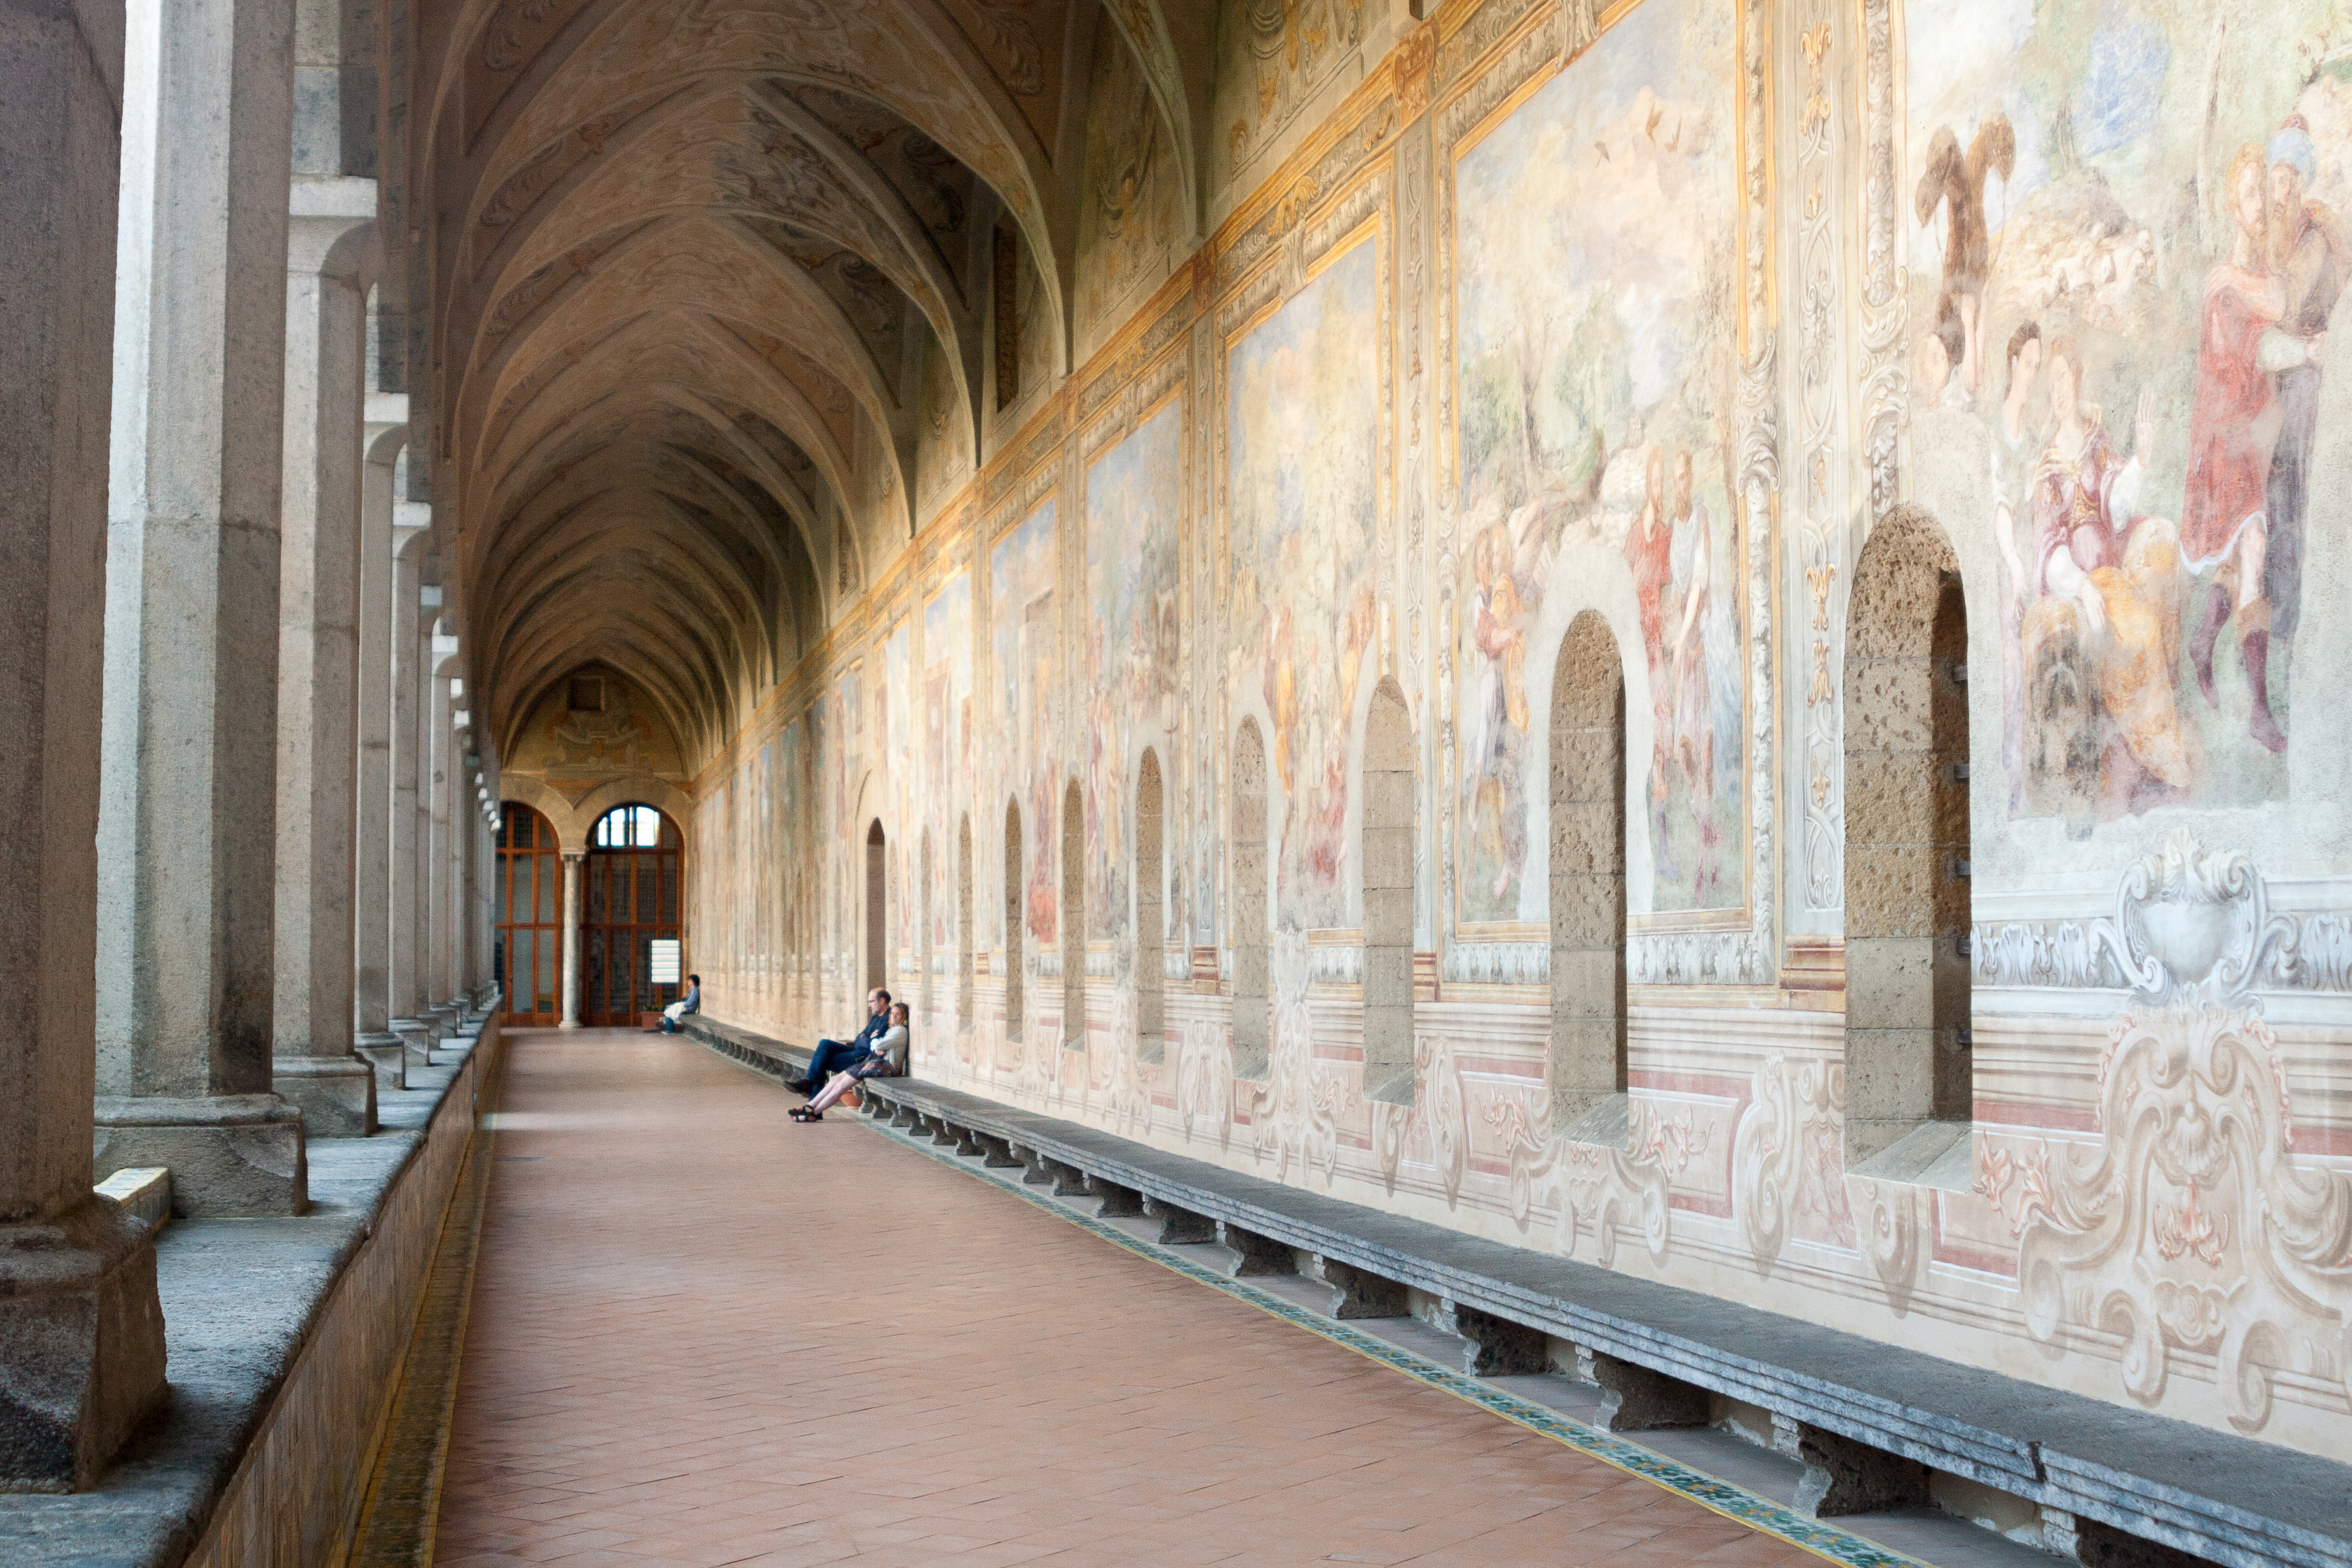 Cloister at the Church of Santa Chiara in Naples, Italy. May 2015.